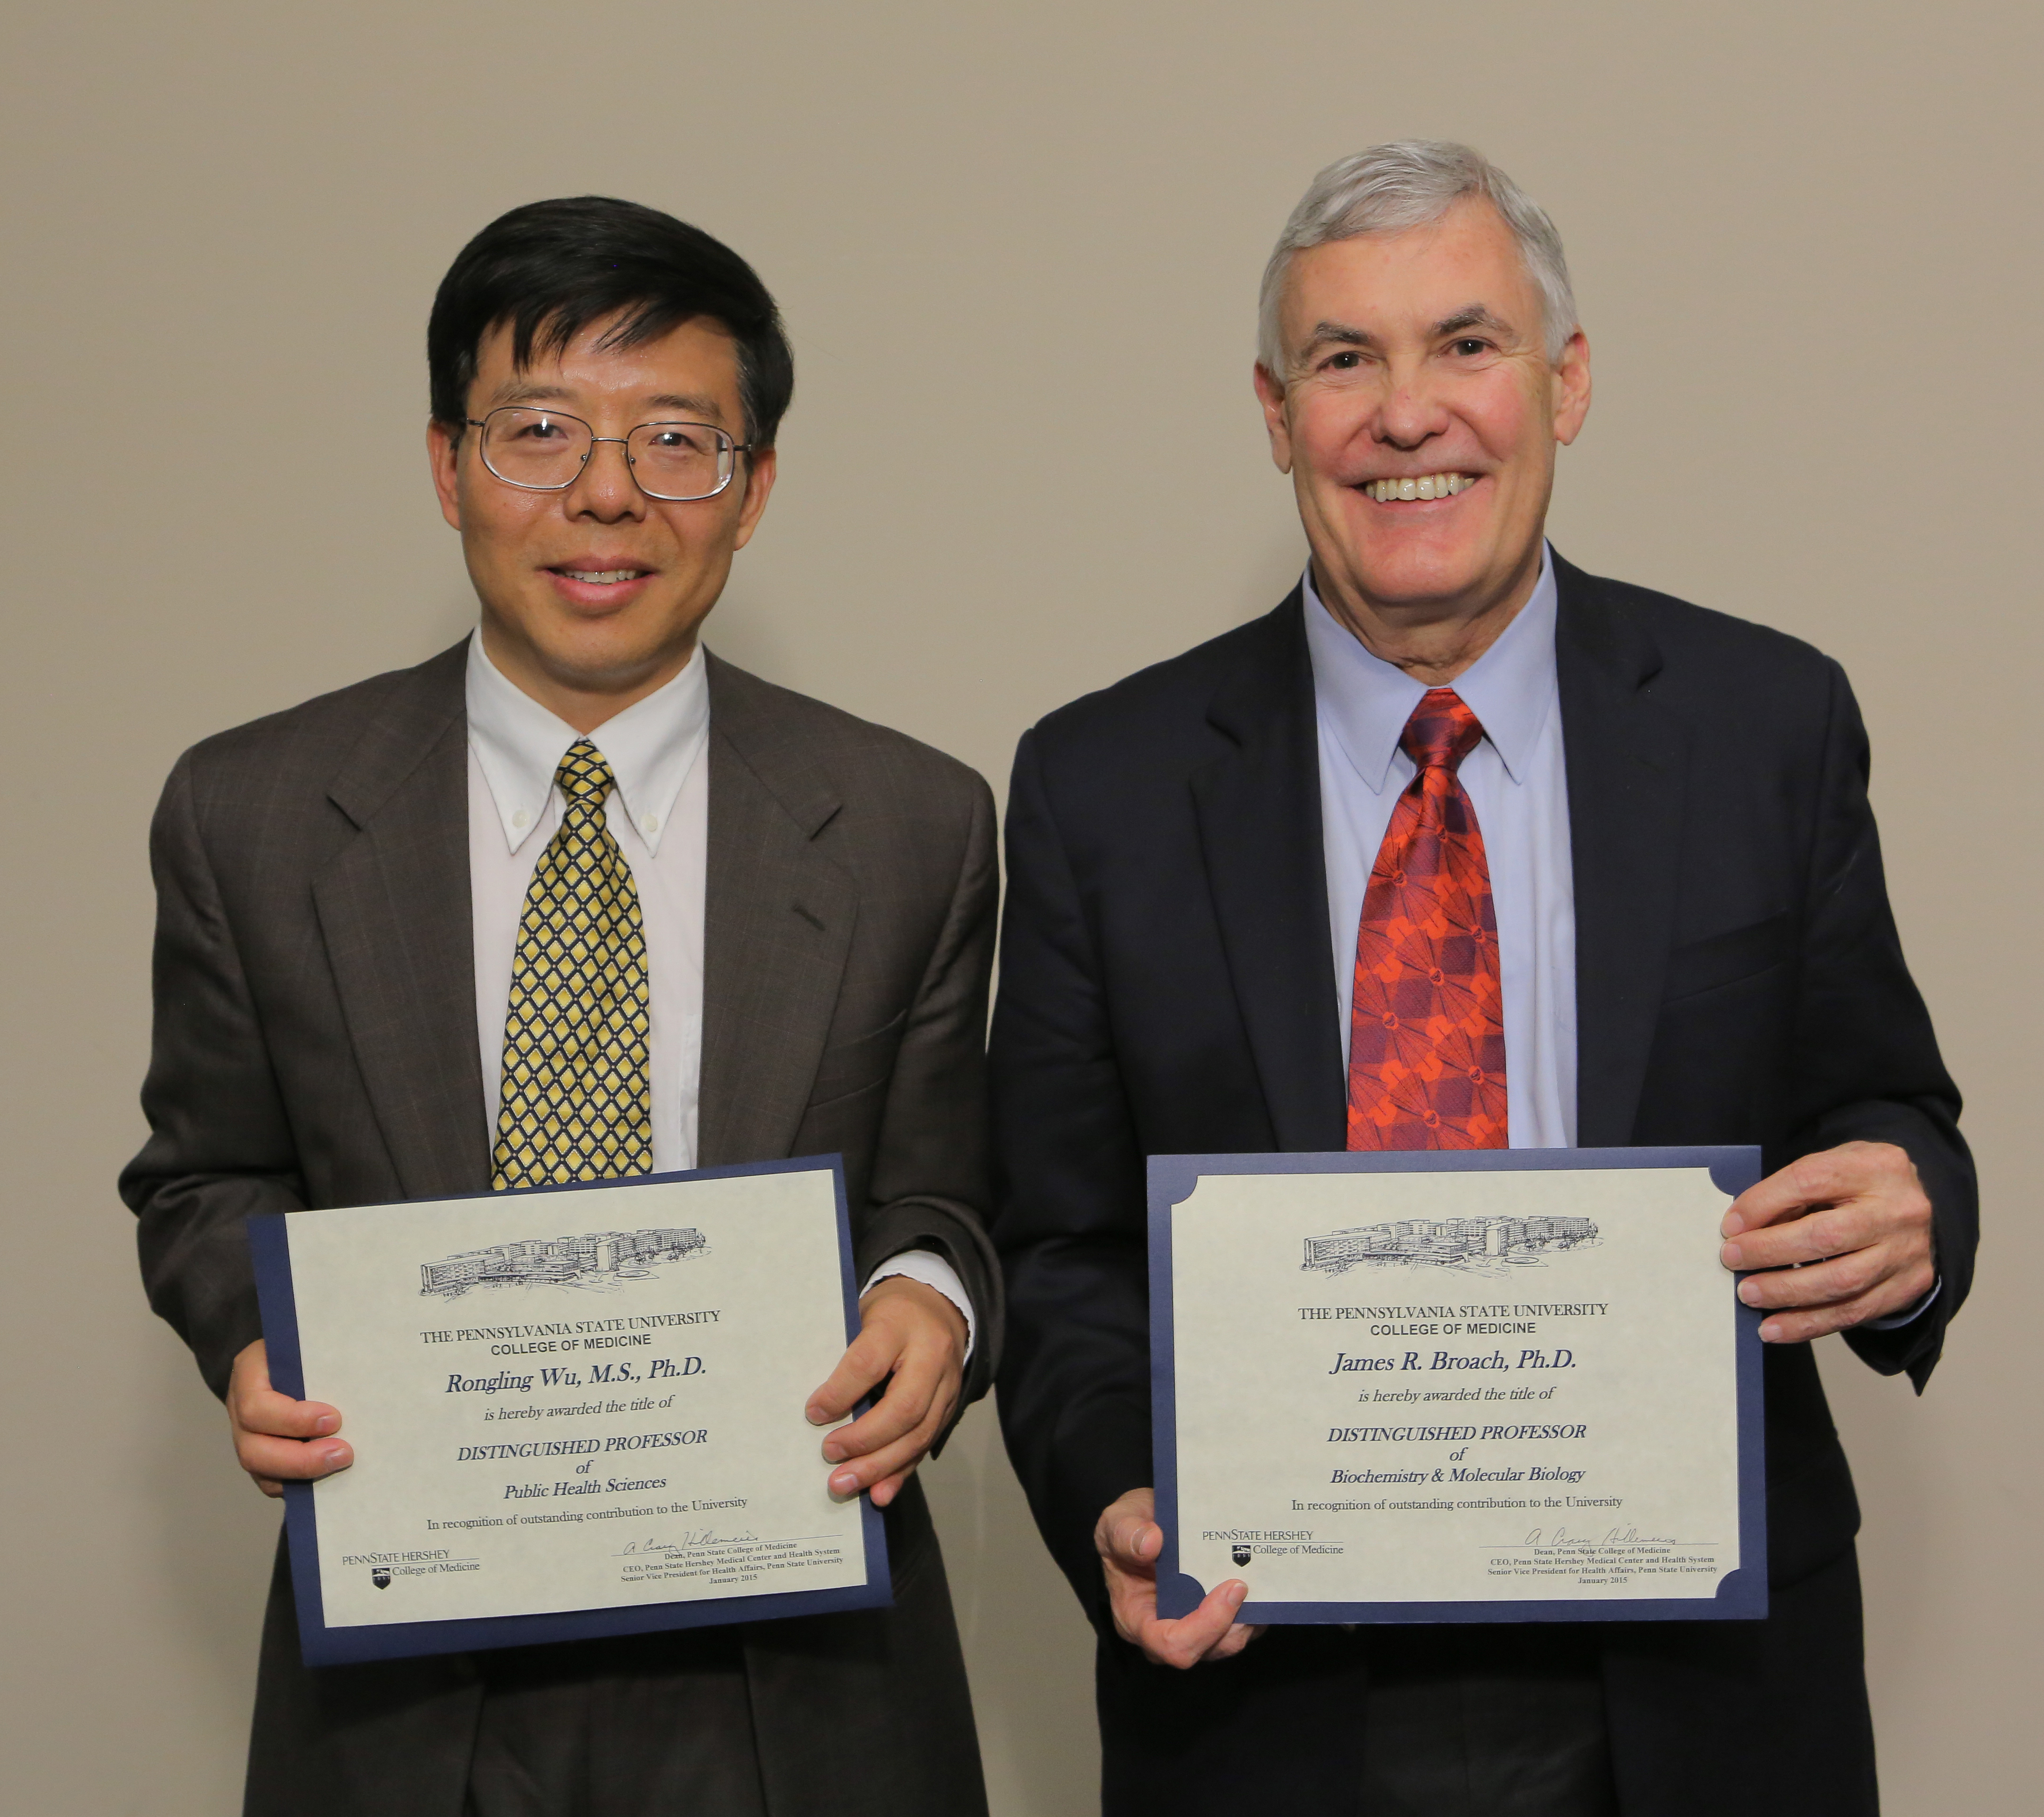 Dr. Rongling Wu and Dr. James Broach